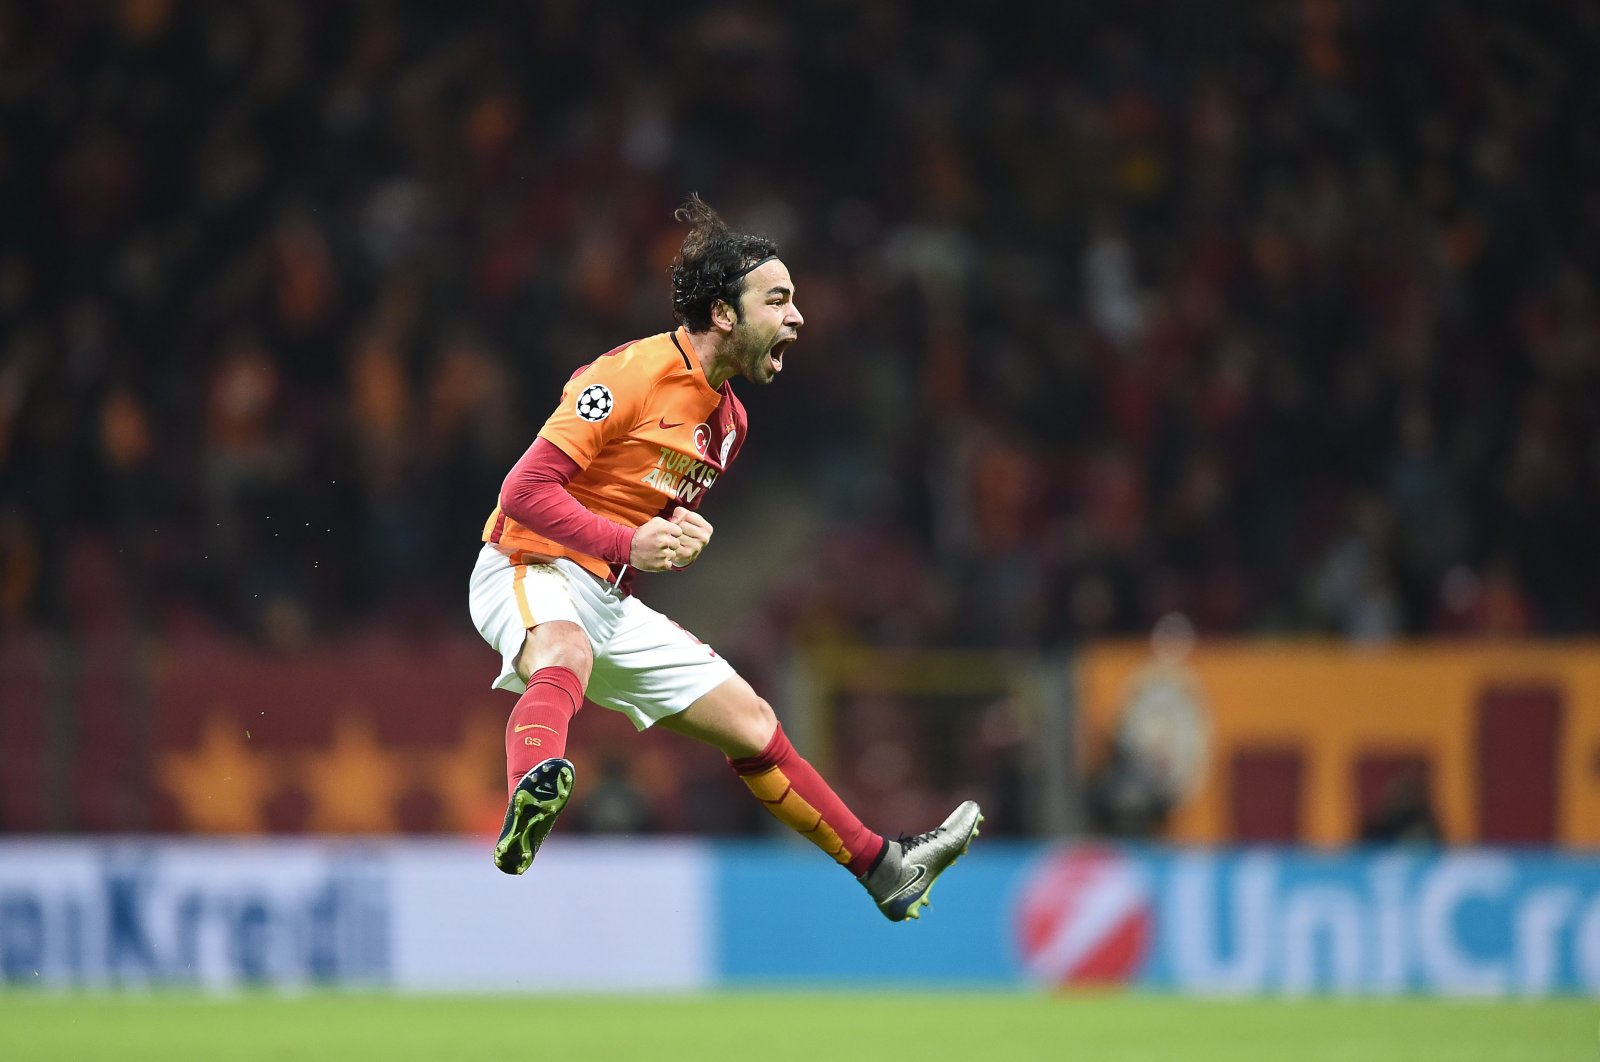 Selçuk İnan celebrates after scoring a goal during the UEFA Champions League Group C football match between Galatasaray AS and FC Astana at the Turk Telekom Arena in Istanbul, Dec. 8, 2015. (AFP Photo)